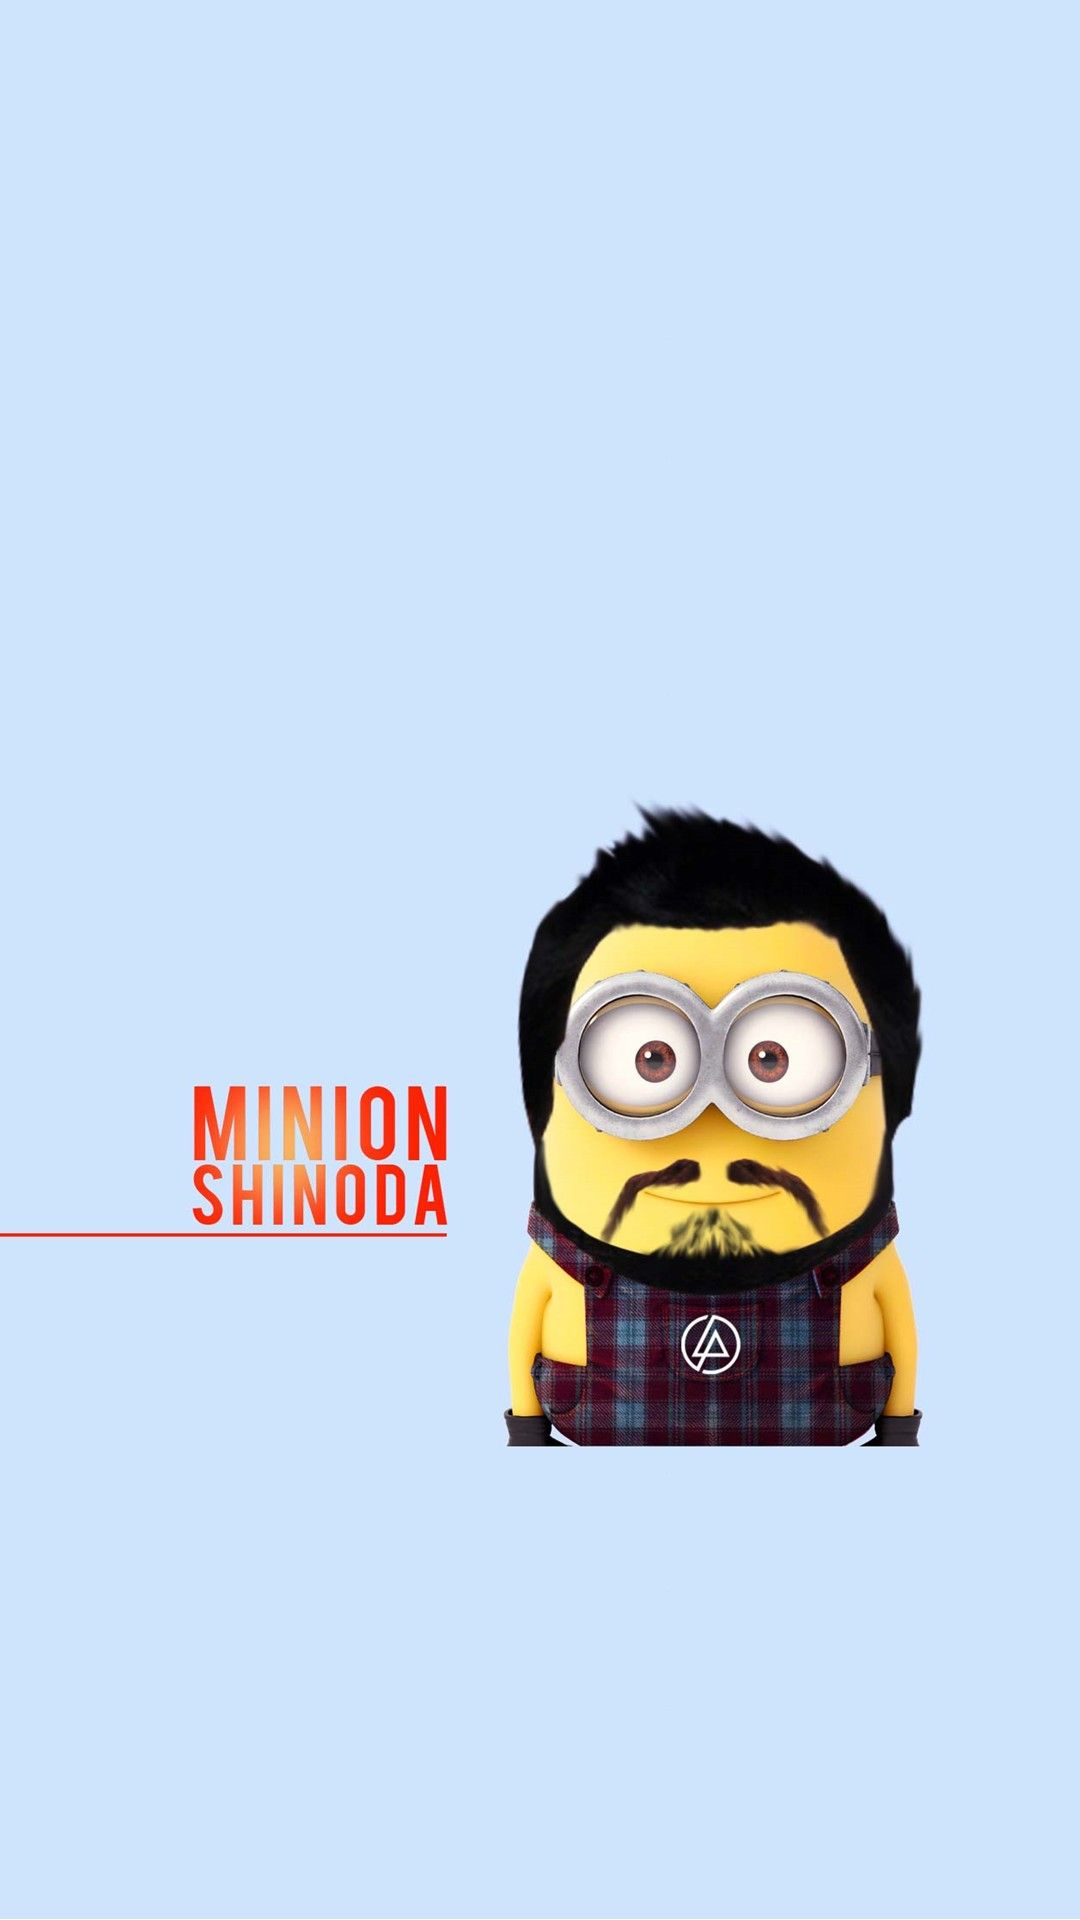 wallpaper iphone 6 plus minion | yokwallpapers